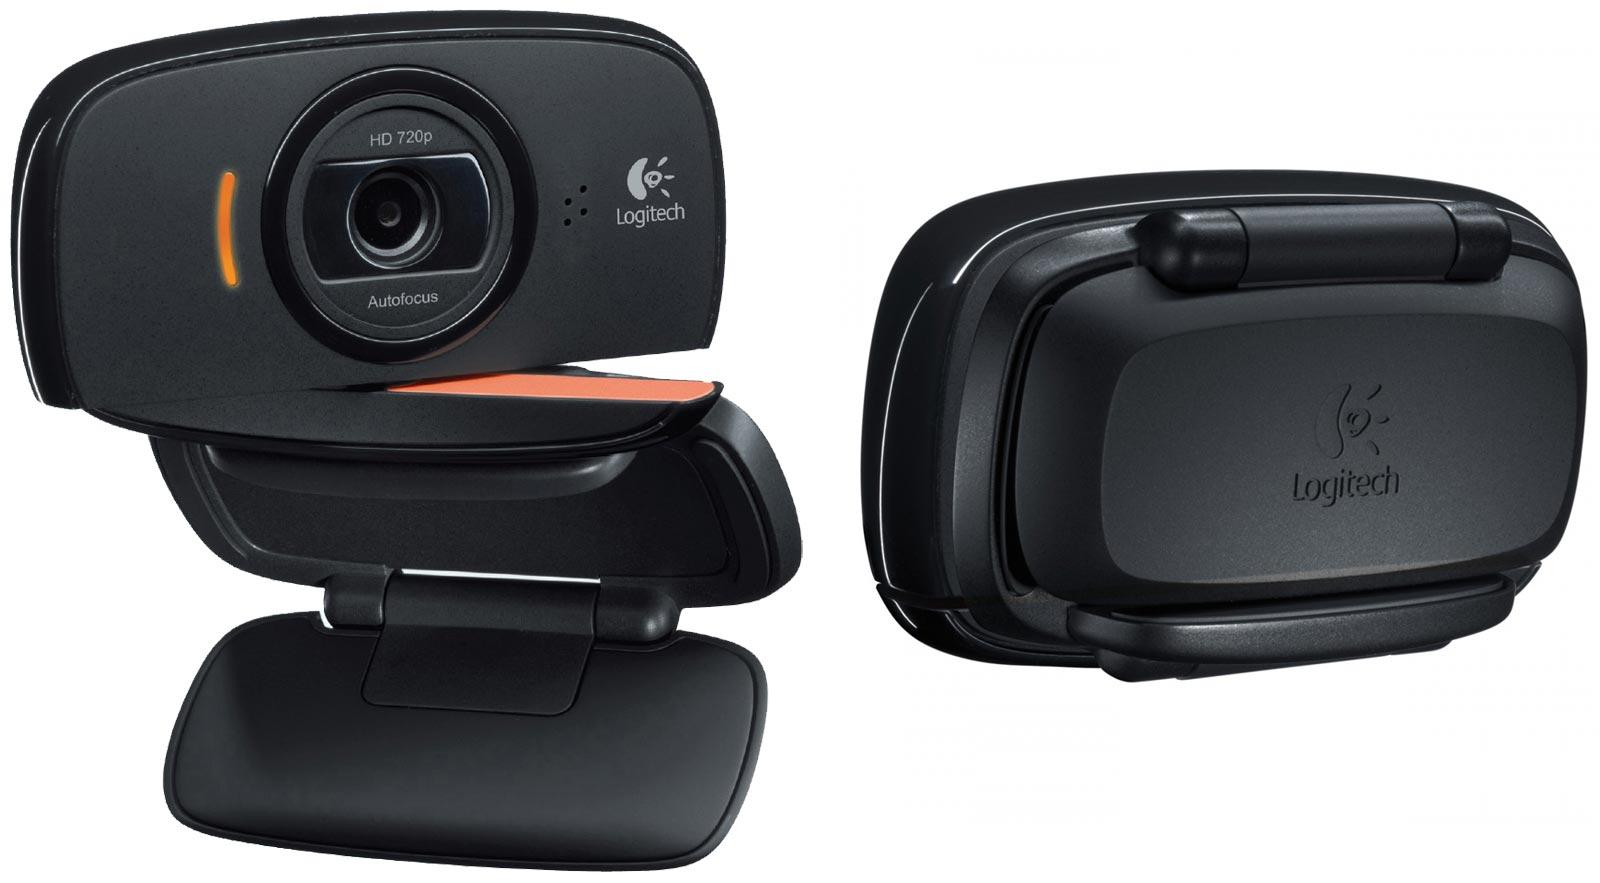 cd3da898950 LOGITECH C525 8MP HD 720p WEBCAM (end 4/22/2018 6:15 PM)